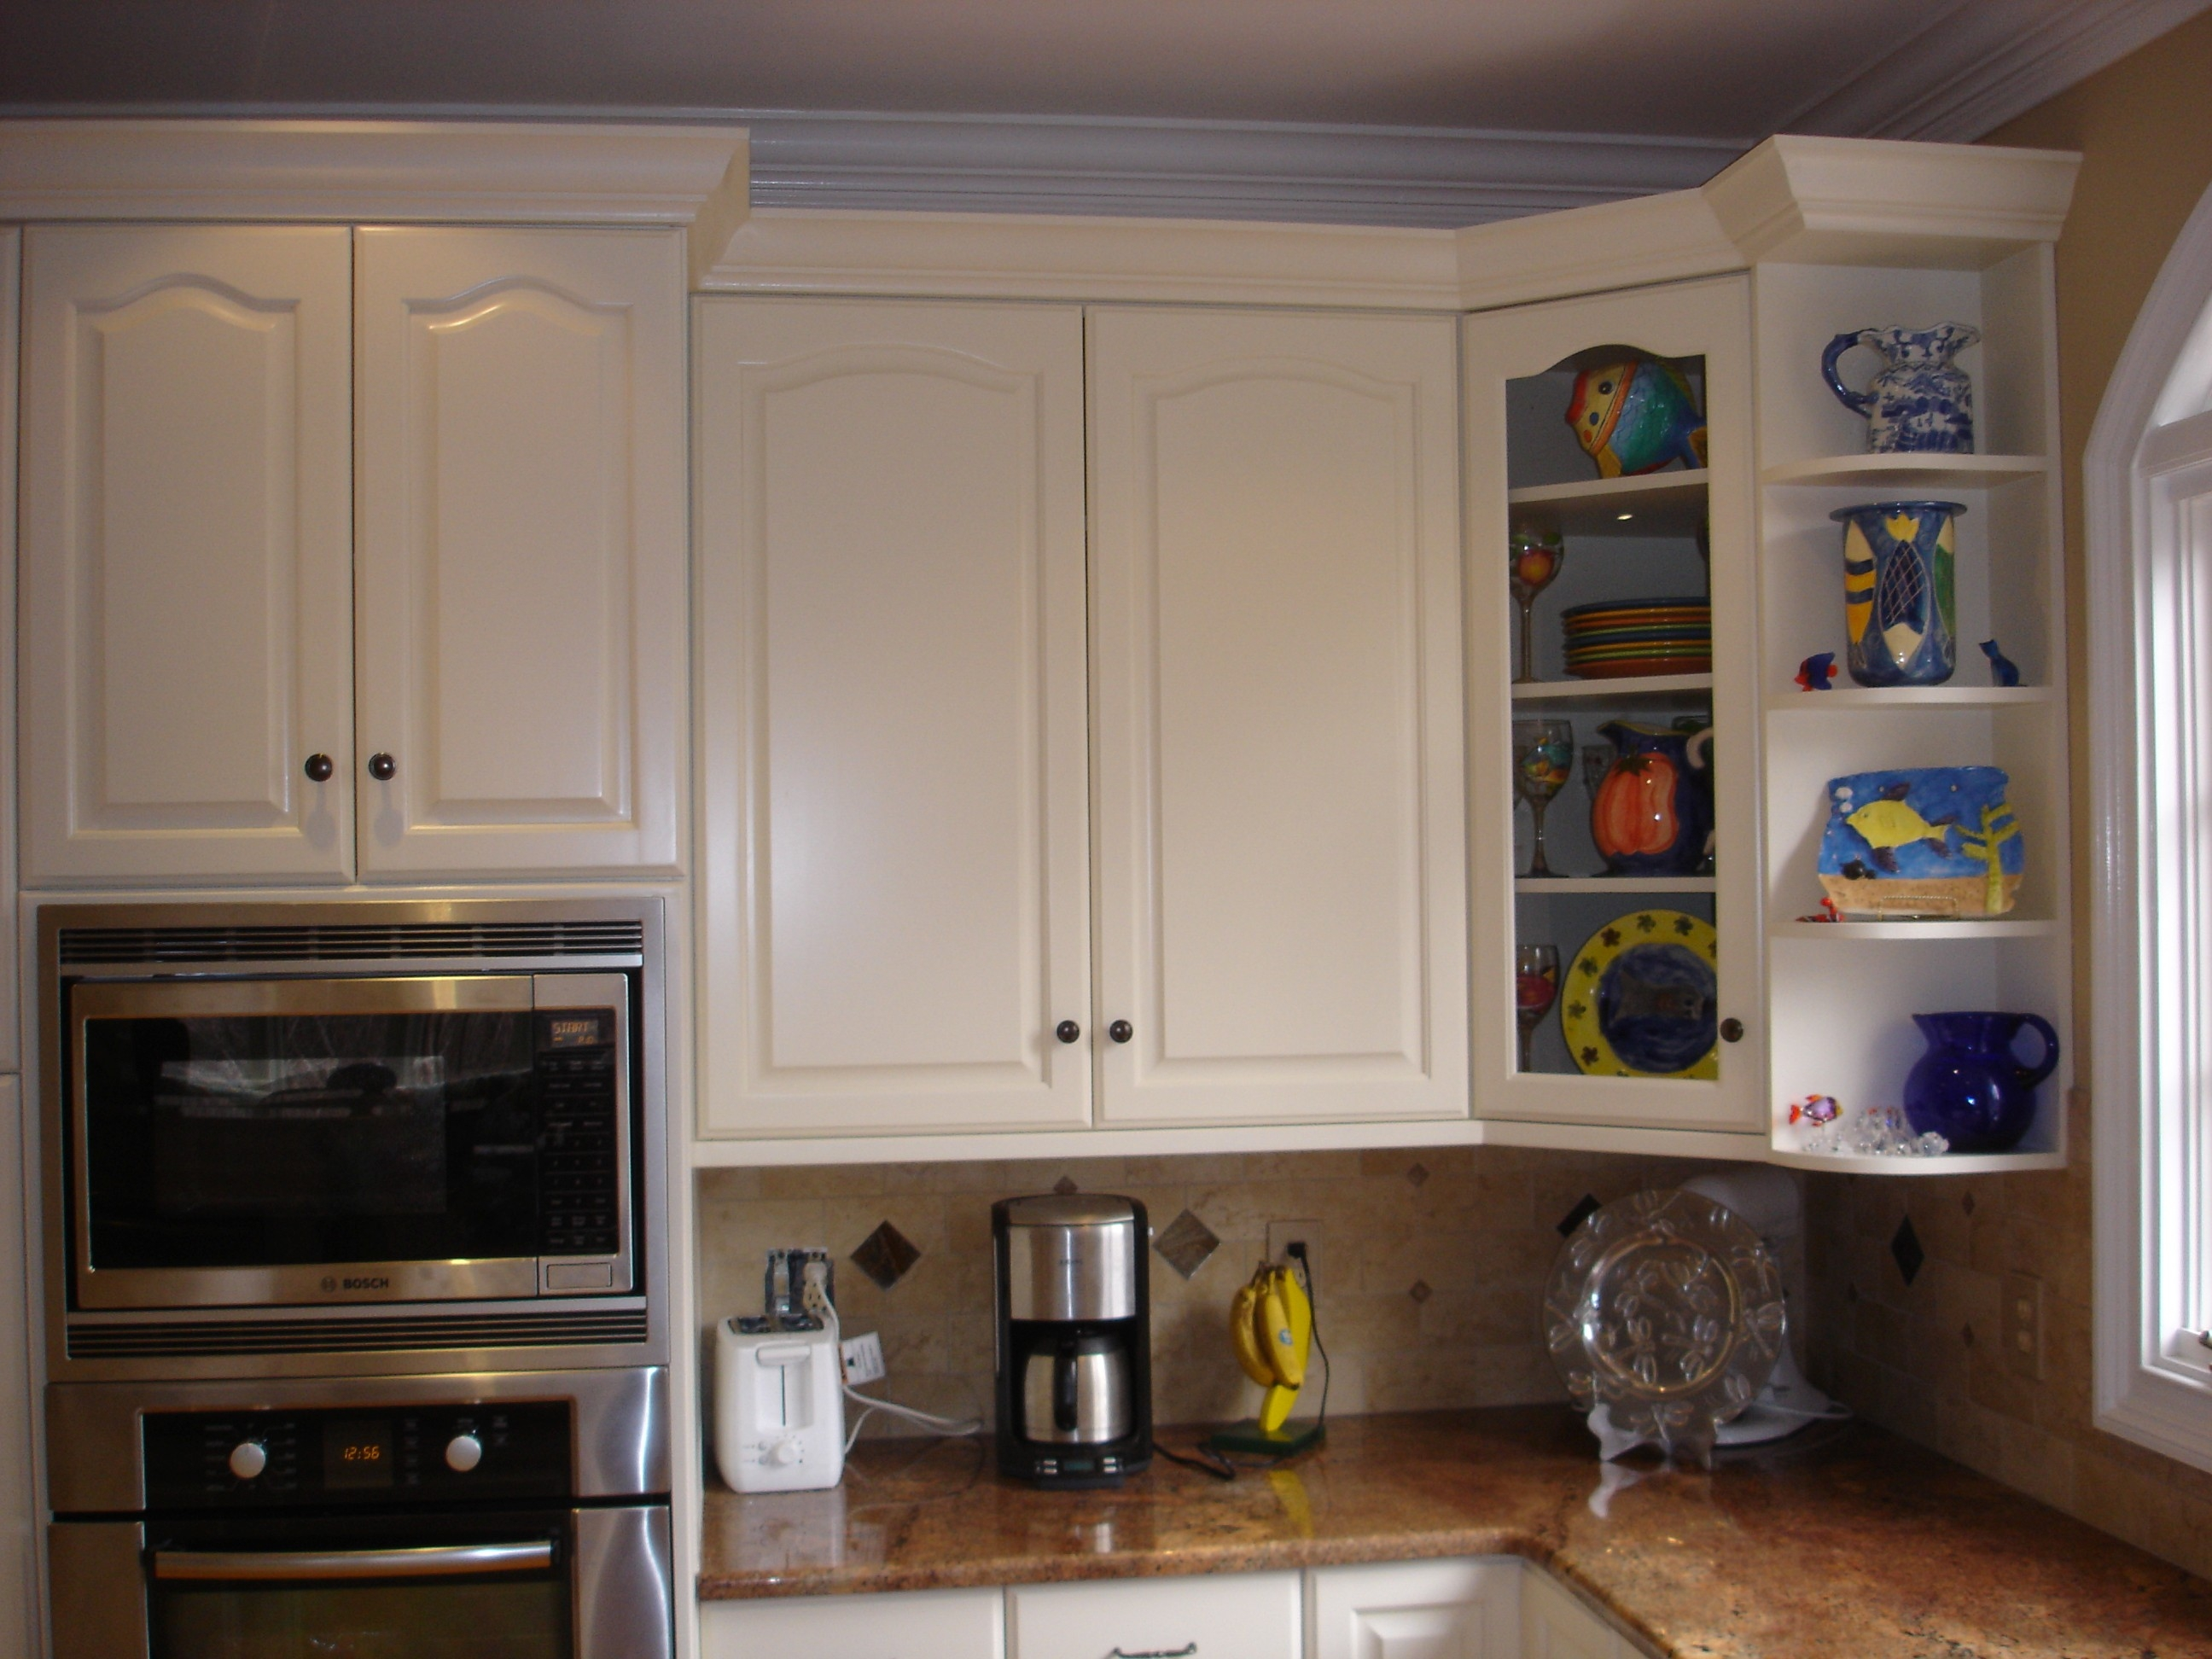 Permalink to Upper Kitchen Cabinet Ideas